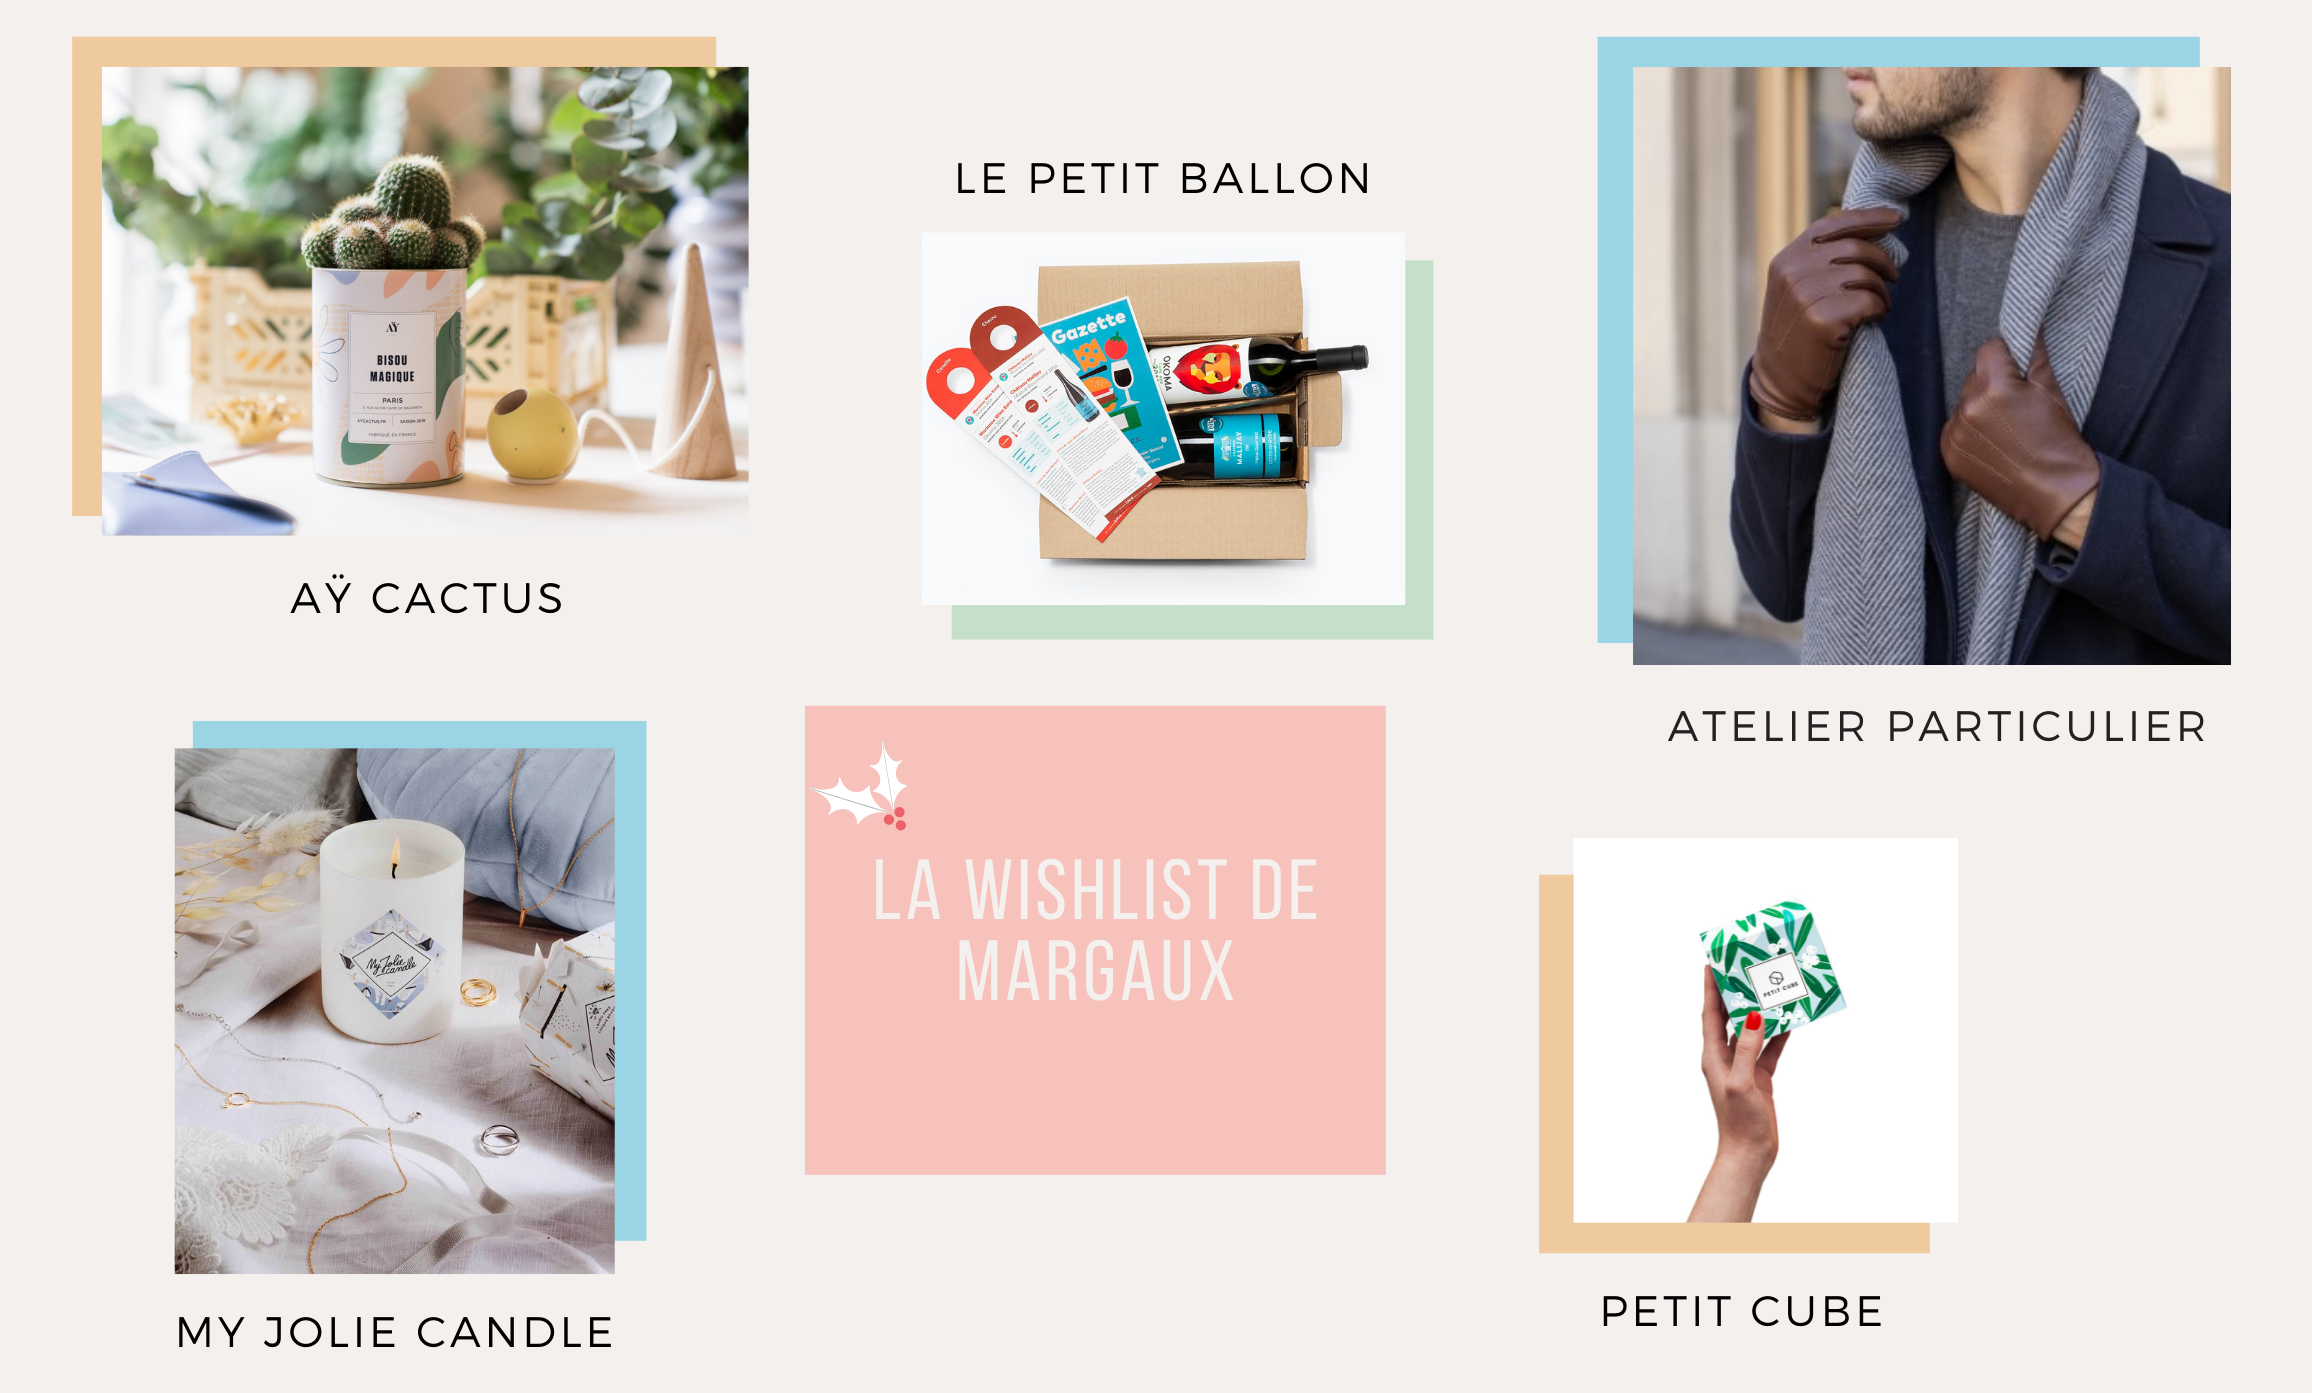 La Wishlist de Margaux